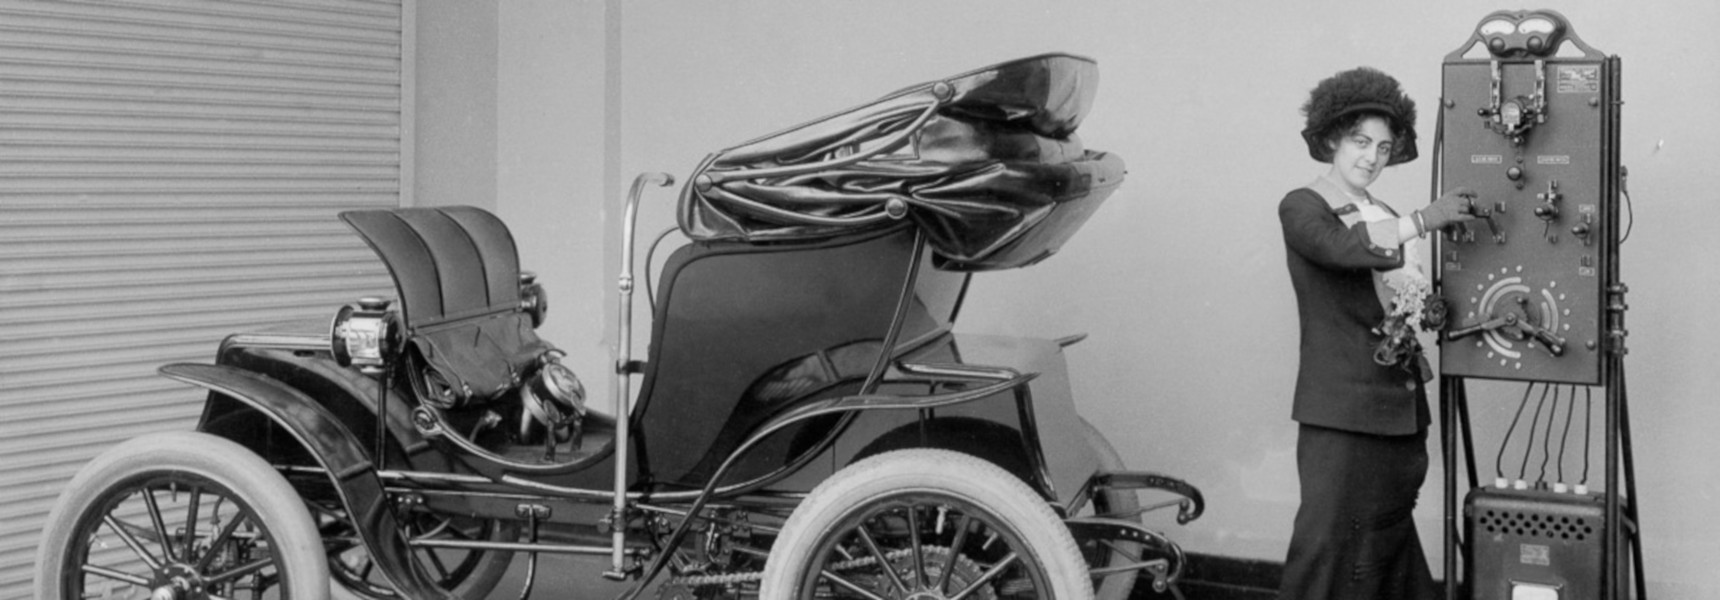 Car driver charges her electric car using a charging device back in 1912. Image: Schenectady Museum; Hall of Electrical History Foundation/Corbis